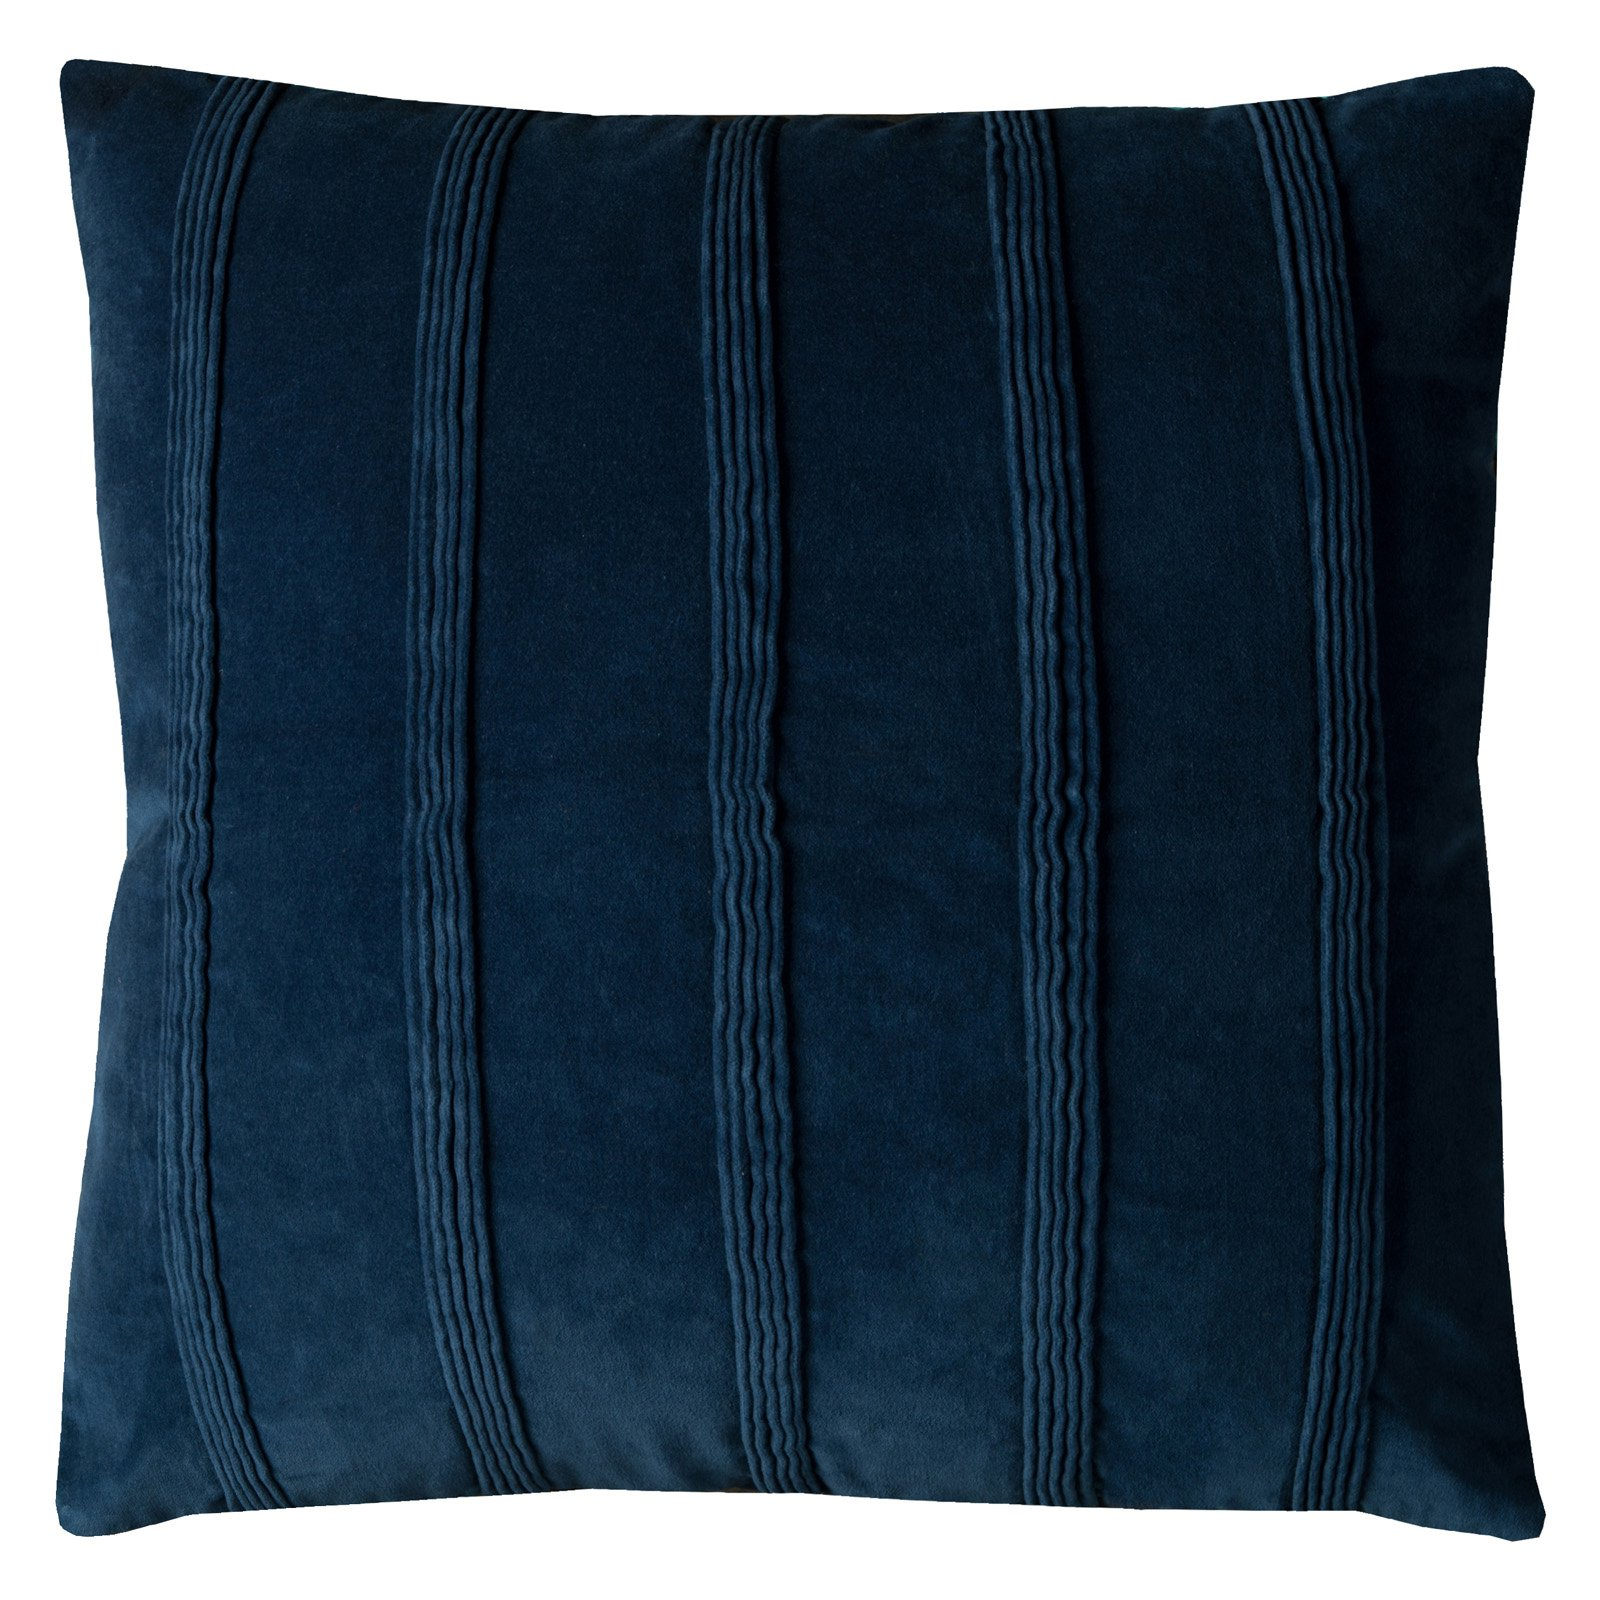 "Rizzy Home T10682 22"" x 22"" Throw Pillow with Zipper Closer"